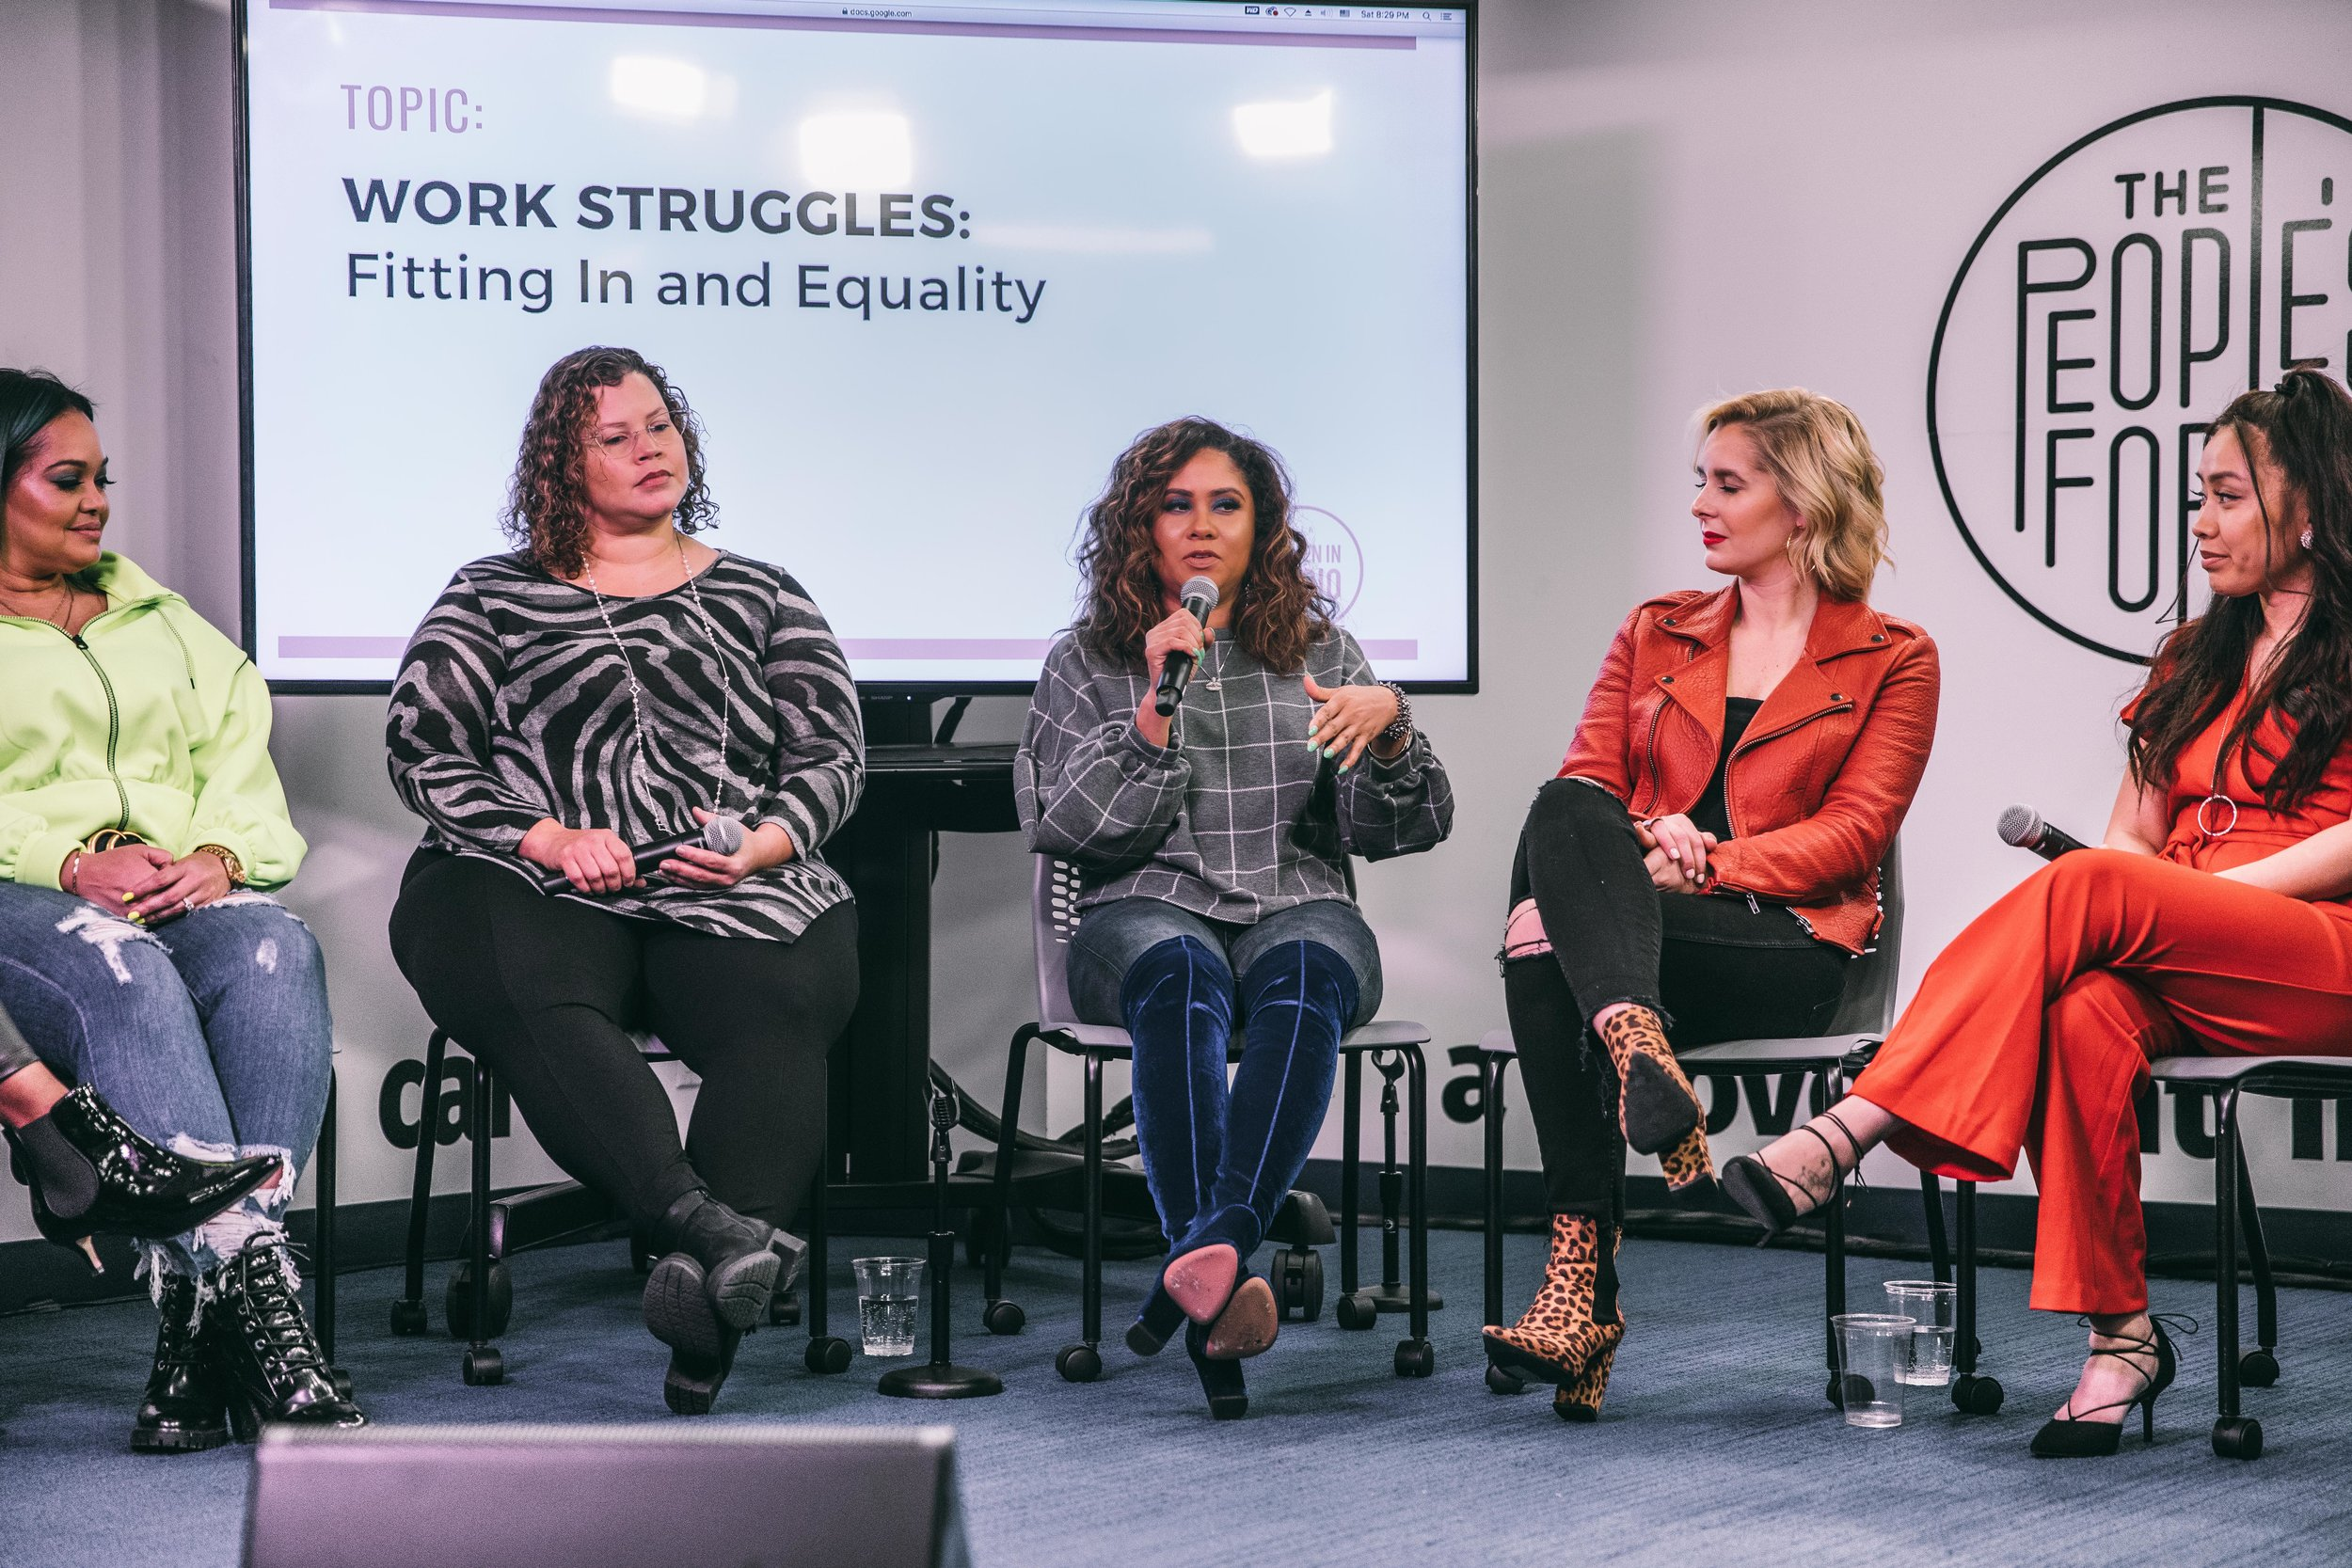 BLOG - Find out about what some amazing women in the radio industry are doing.